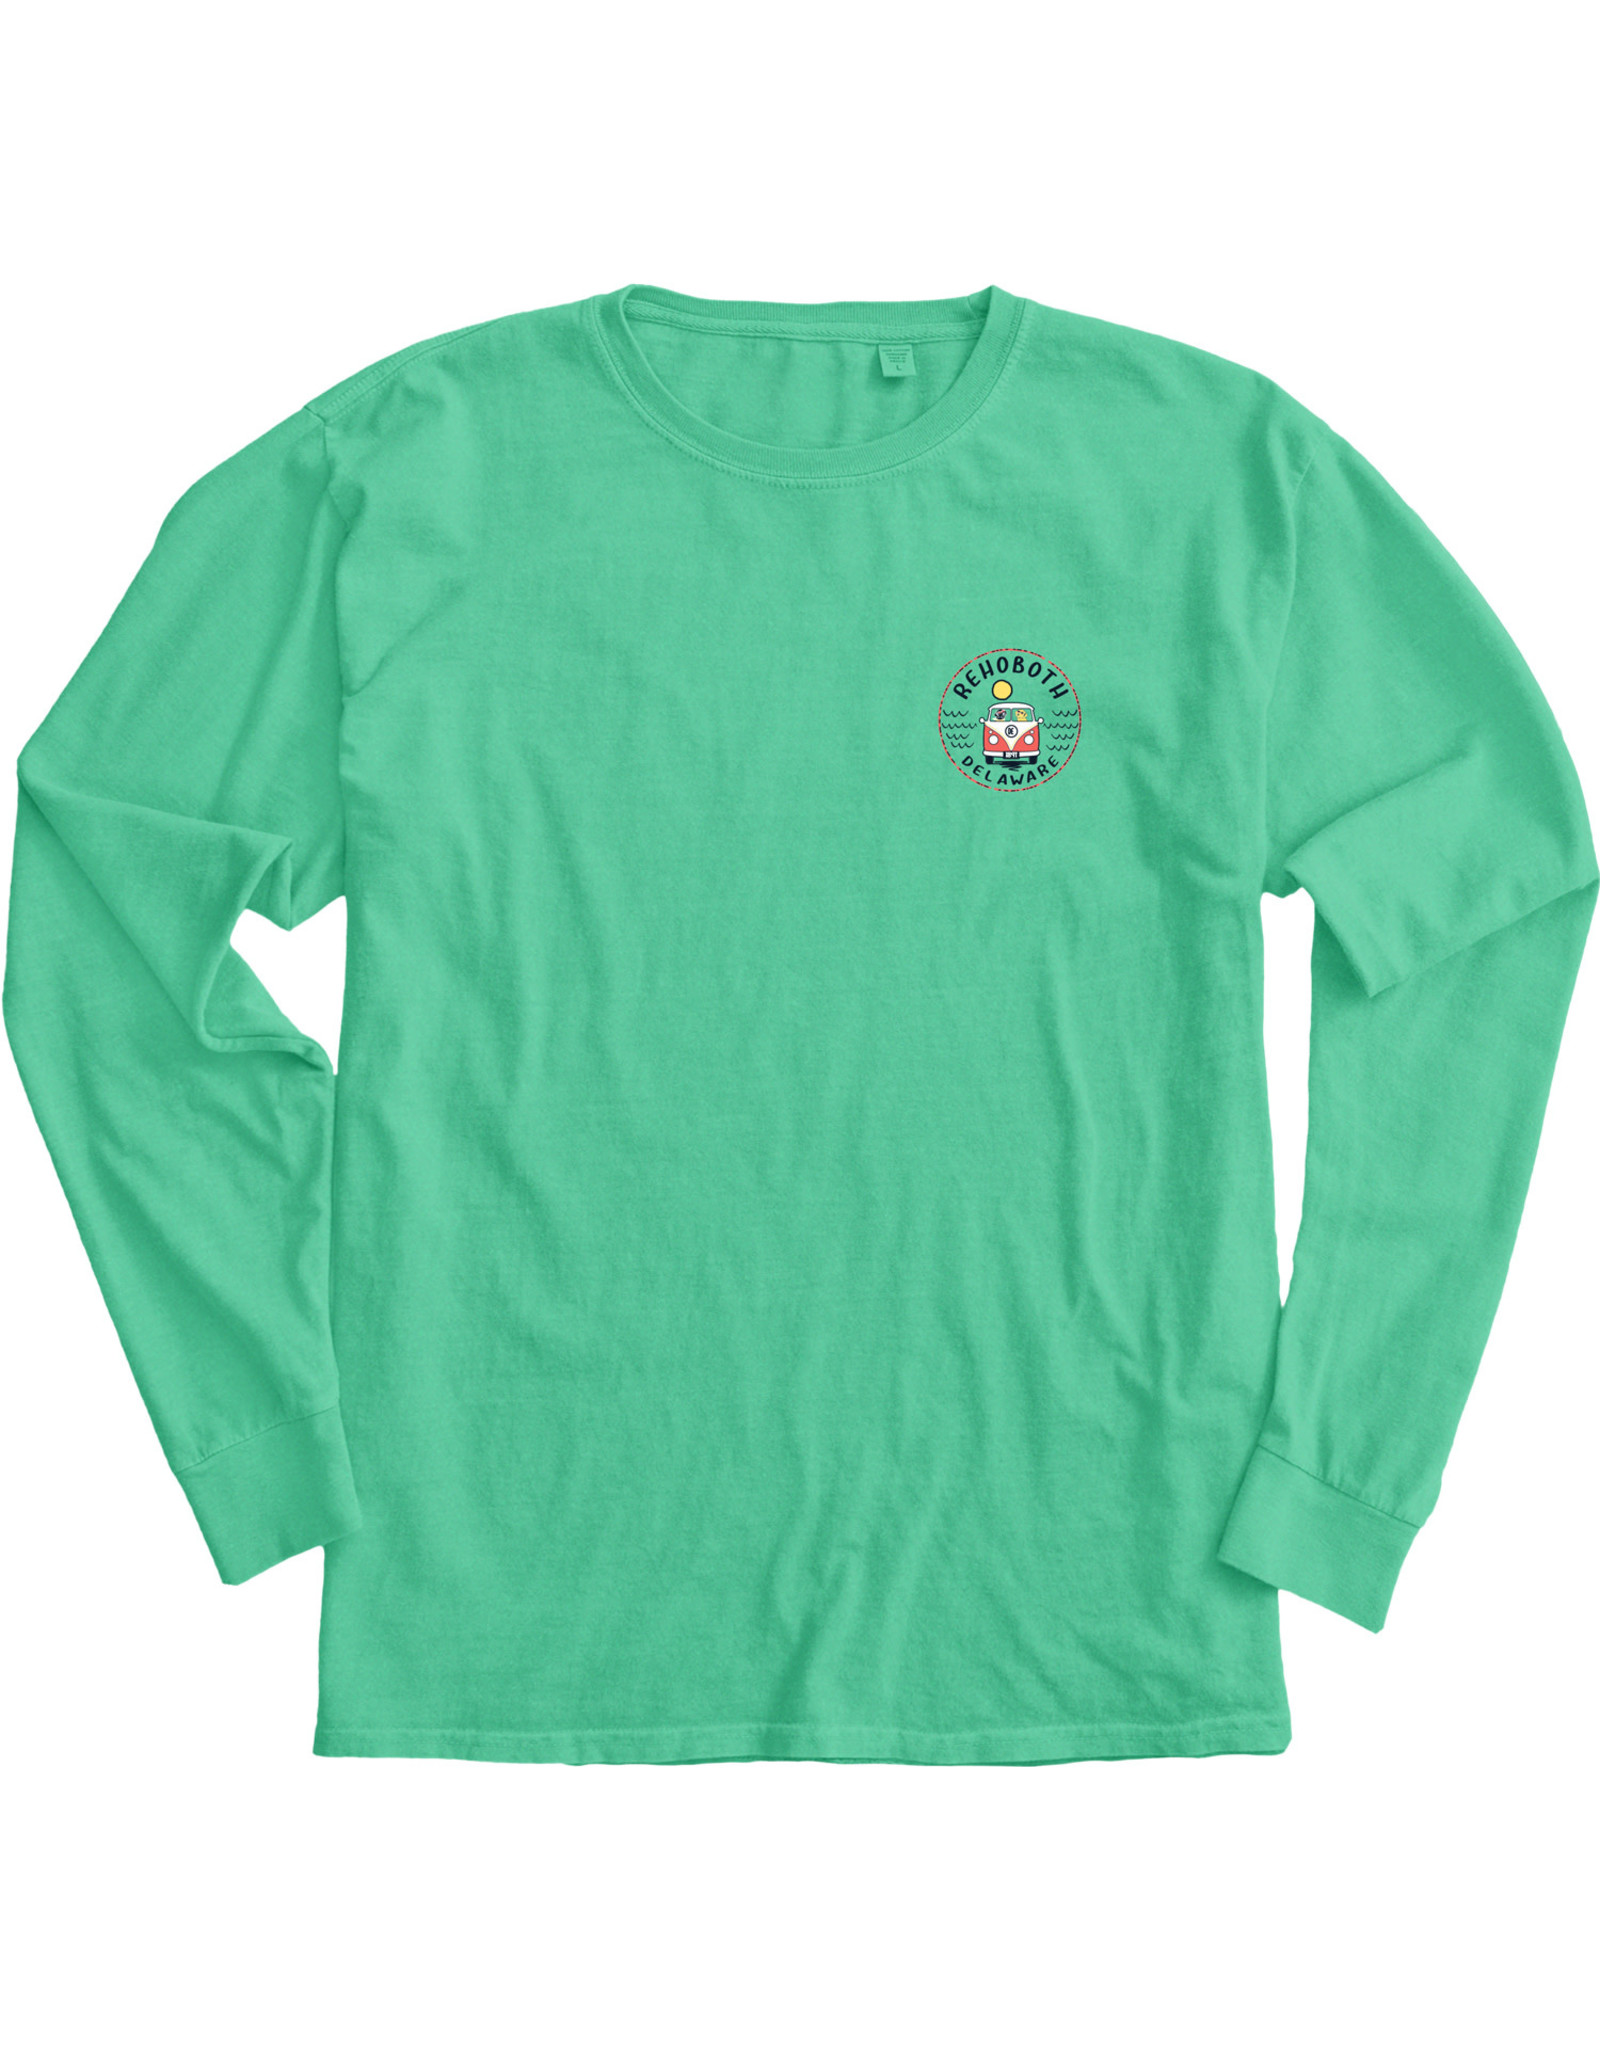 BLUE 84 CONCURRENCE BUS/DOGS LS TEE